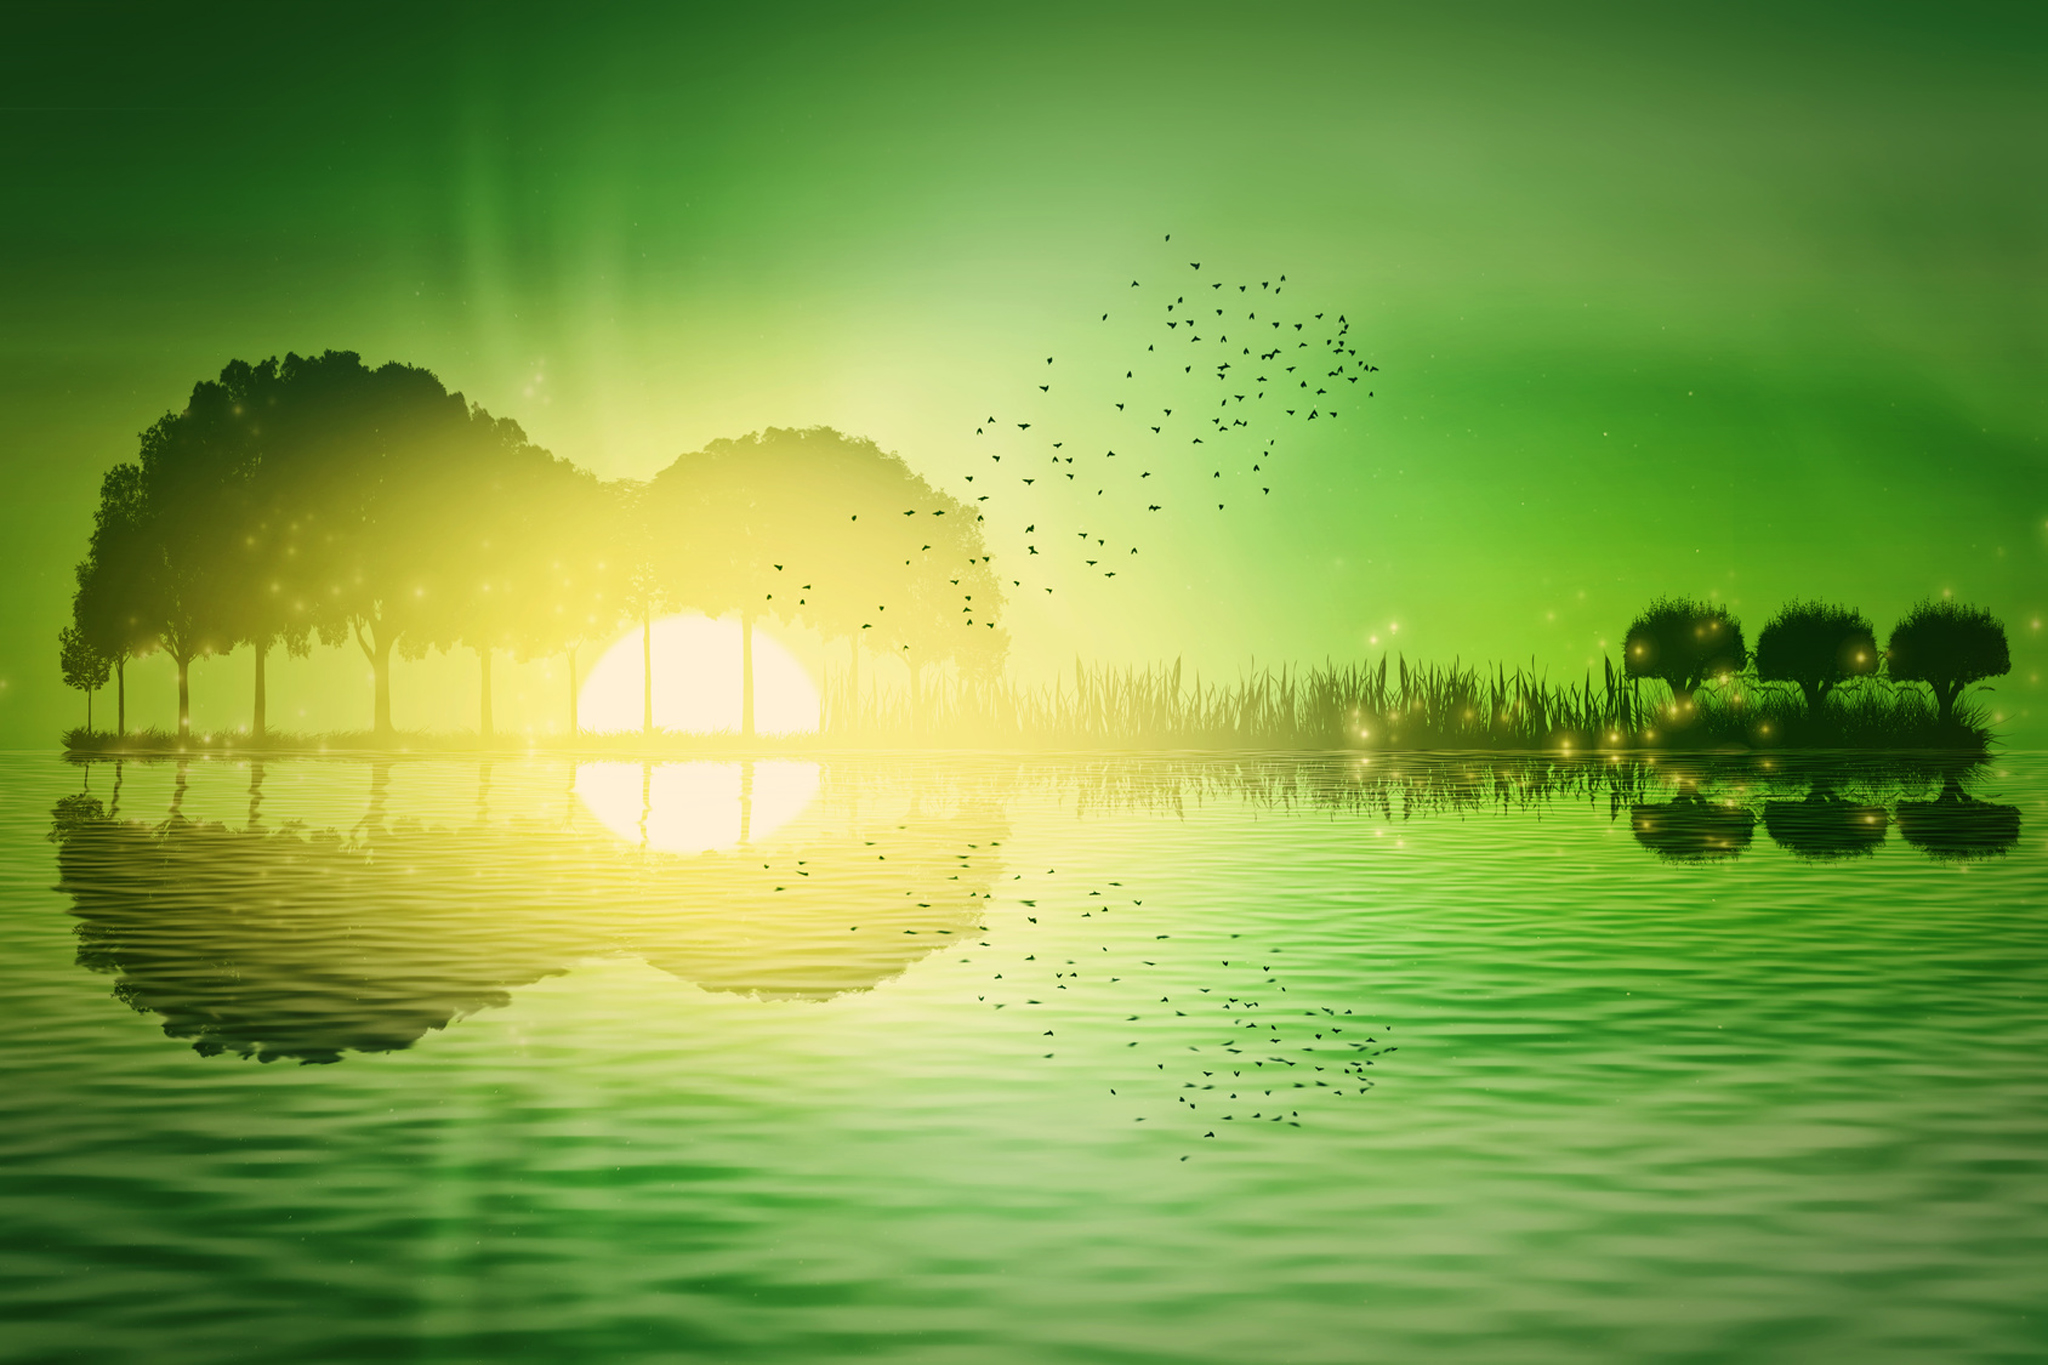 Trees and grass arranged in a shape of a guitar on a green tropical sunset background. Music island with a guitar reflection in water